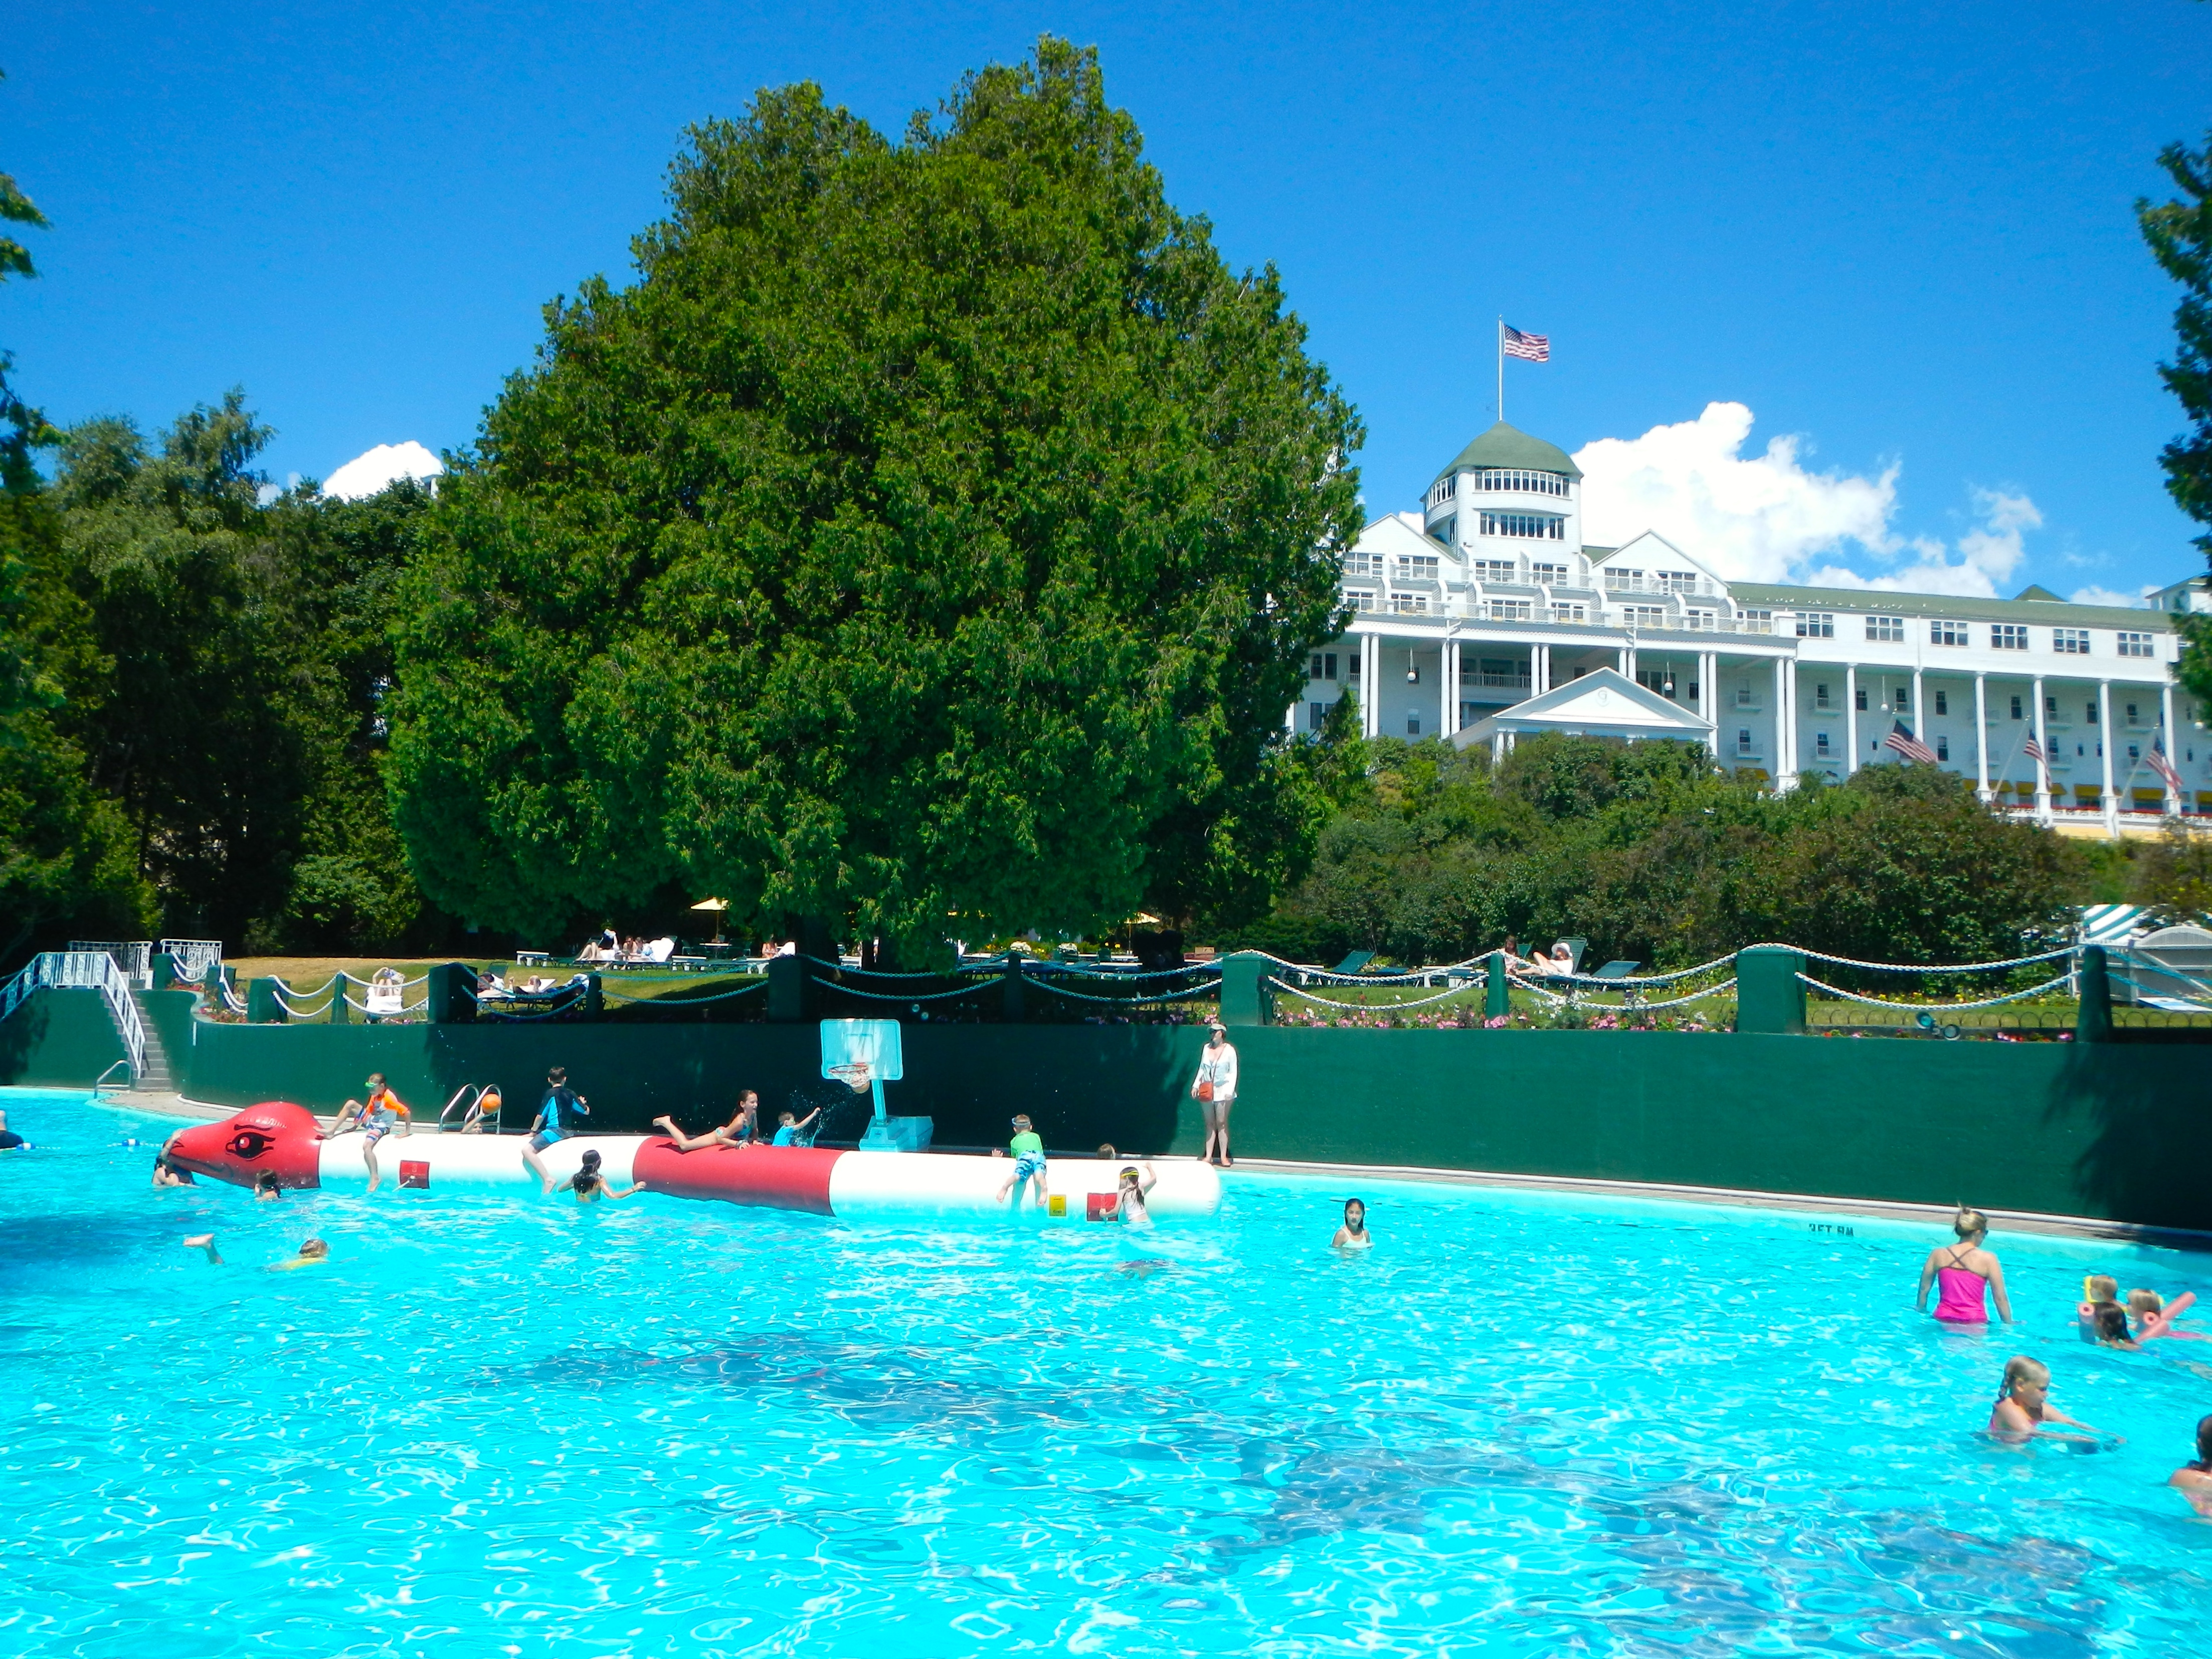 the esther williams swimming pool at the grand hotel summer setting